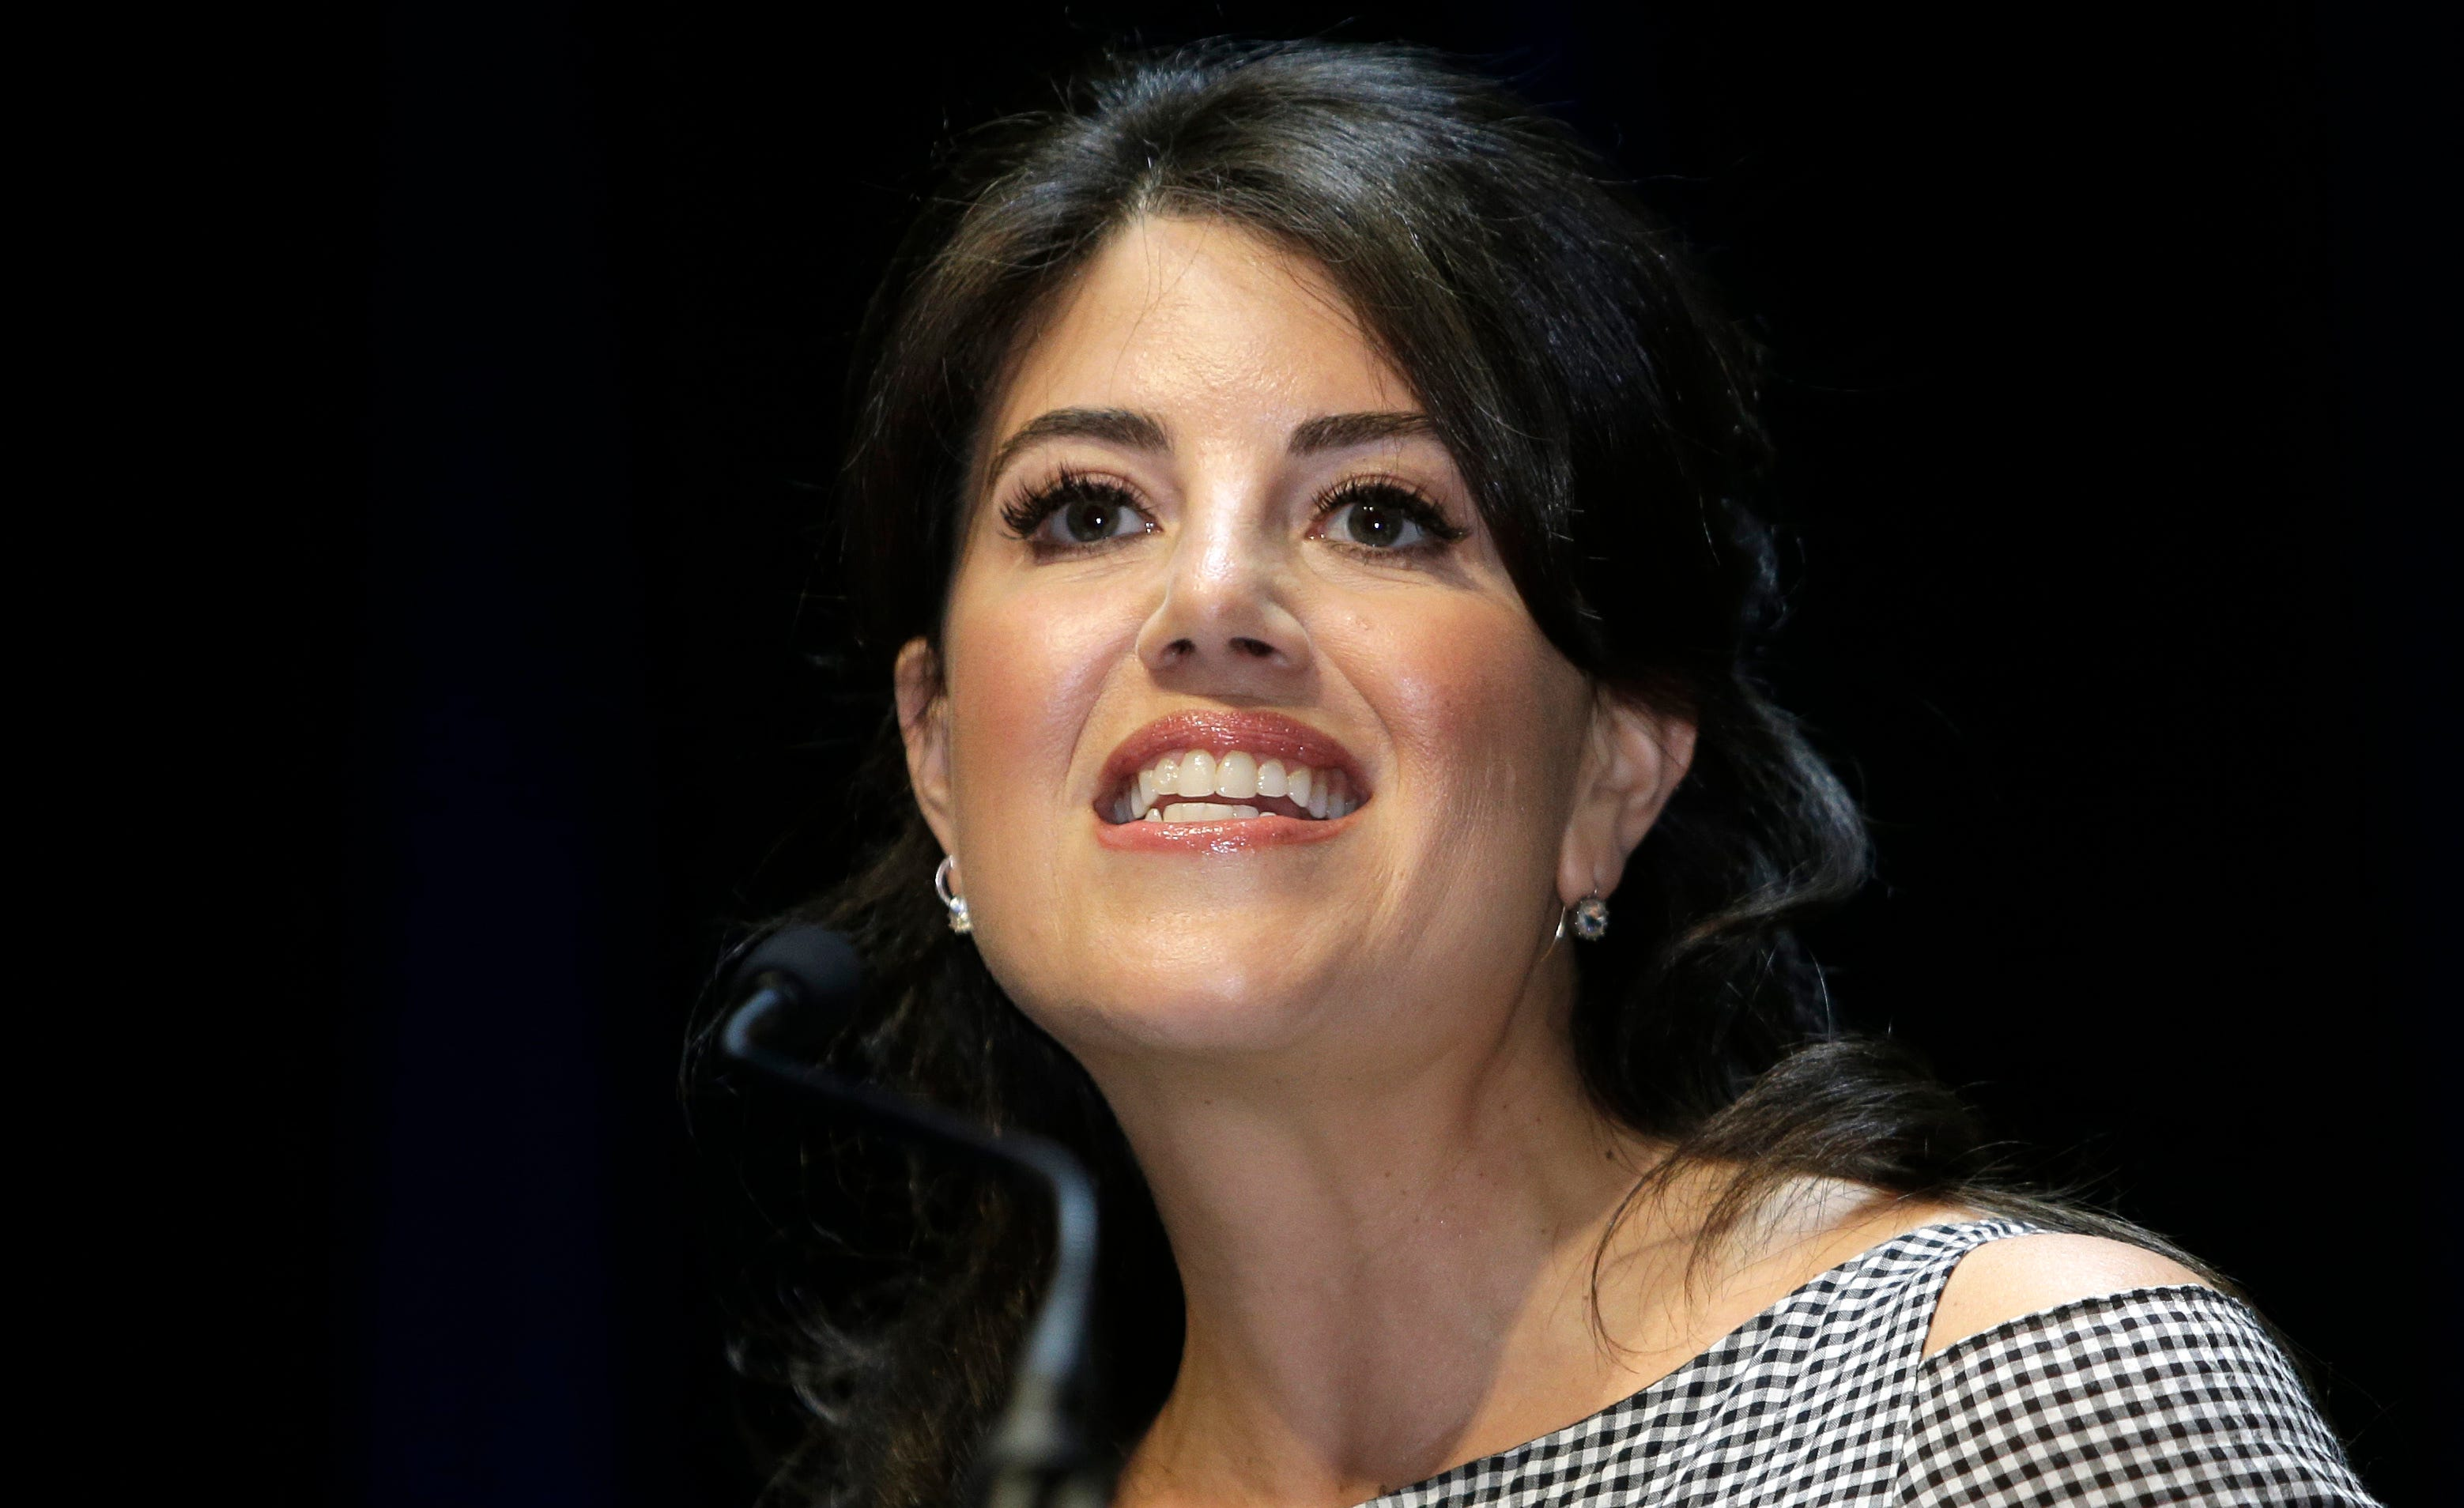 Monica Lewinsky storms offstage in Israel after 'off limits' Bill Clinton question